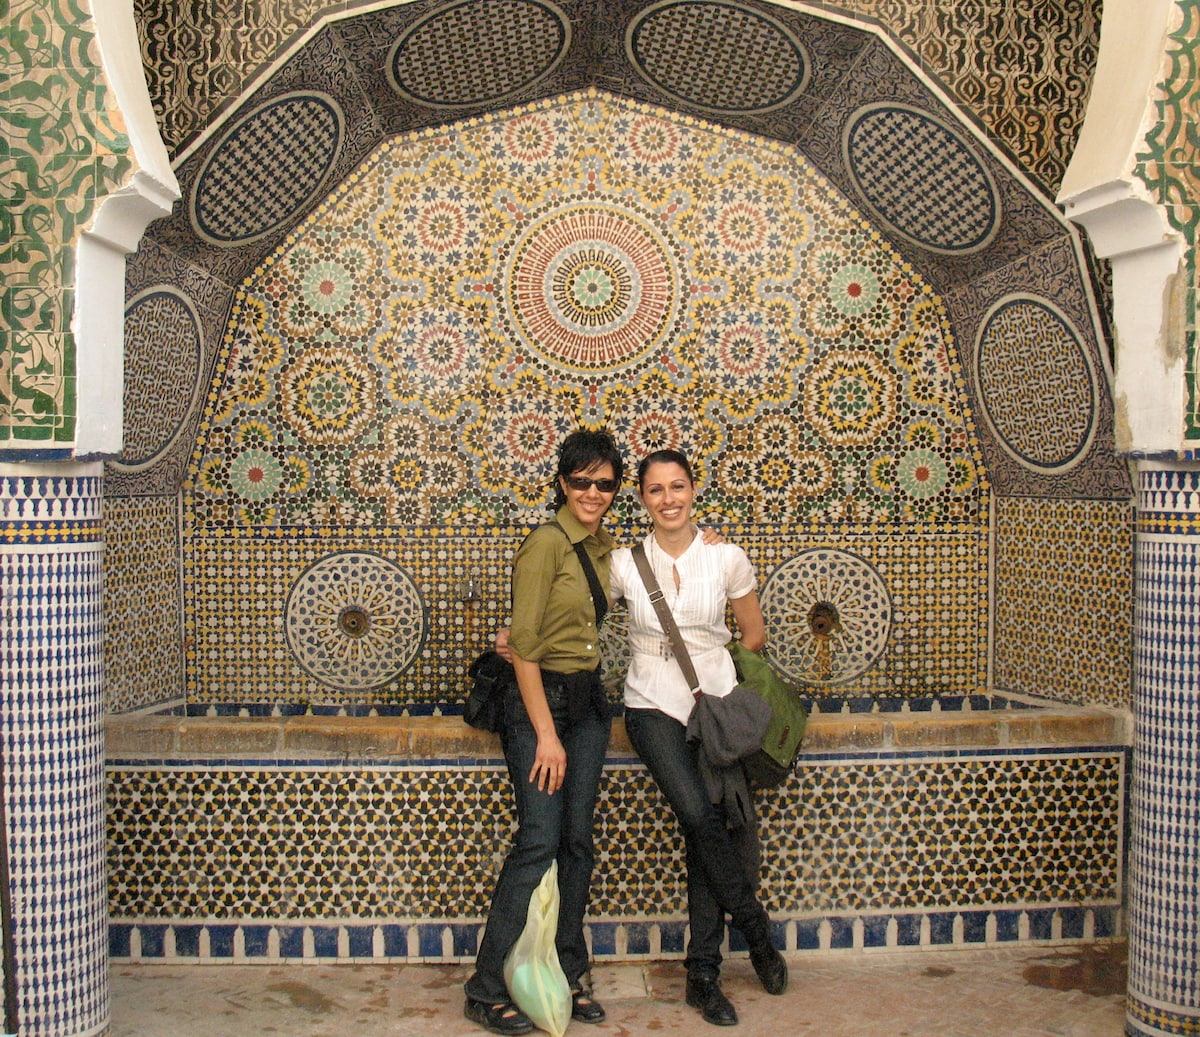 My sister Jennifer and I love to travel together a